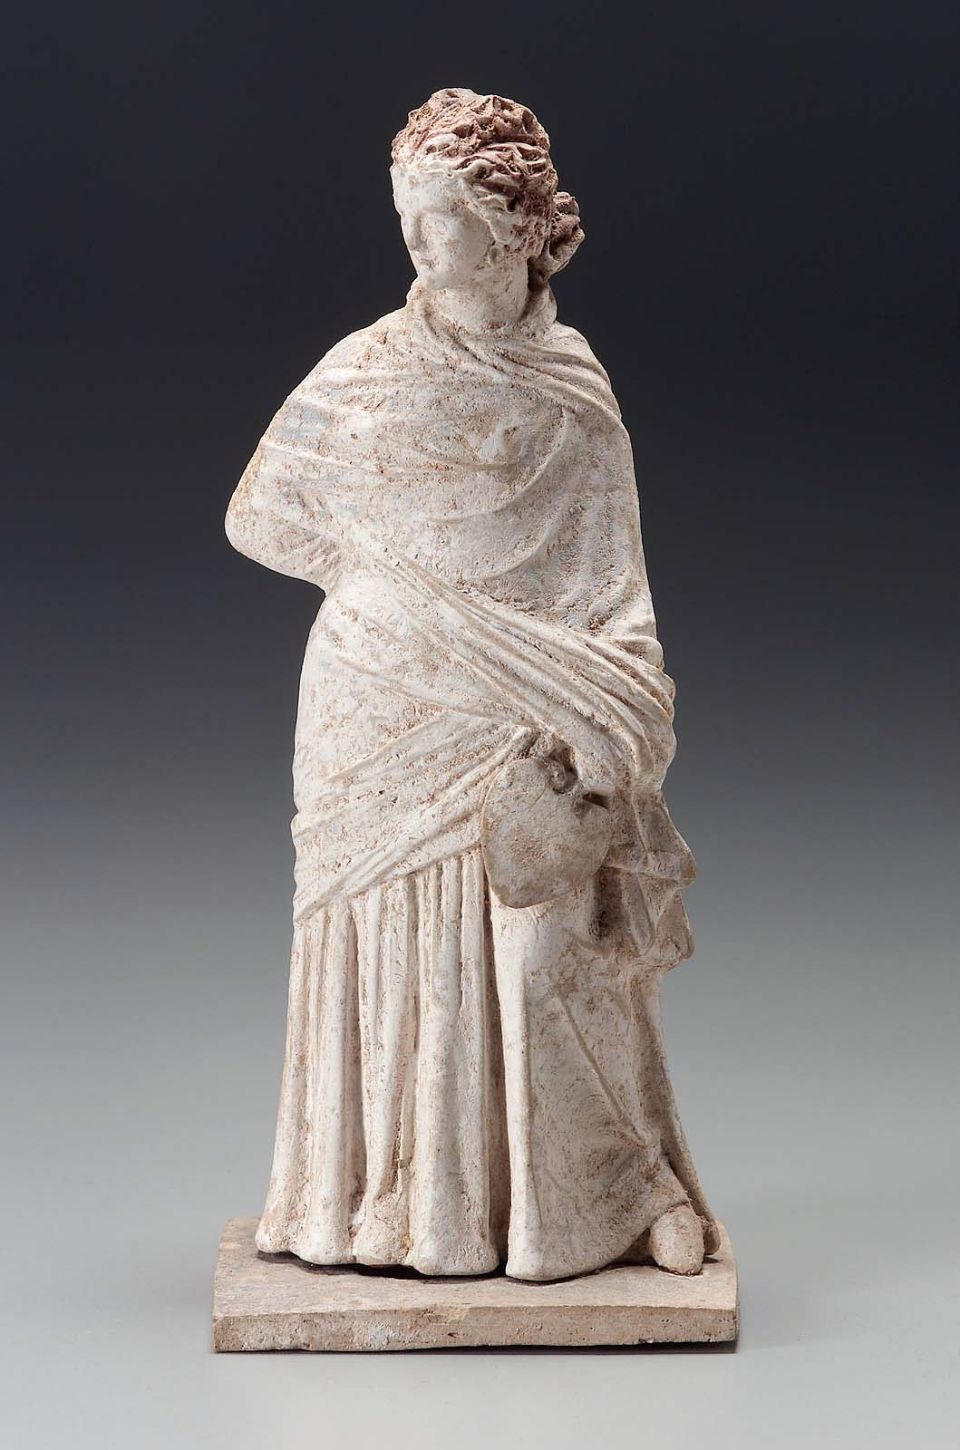 Woman Holding A Fan Greek Classical Period About 5th Century B C Place Of Manufacture Tanagra Boiotia Greece Classical Period Ancient Greece Minoan